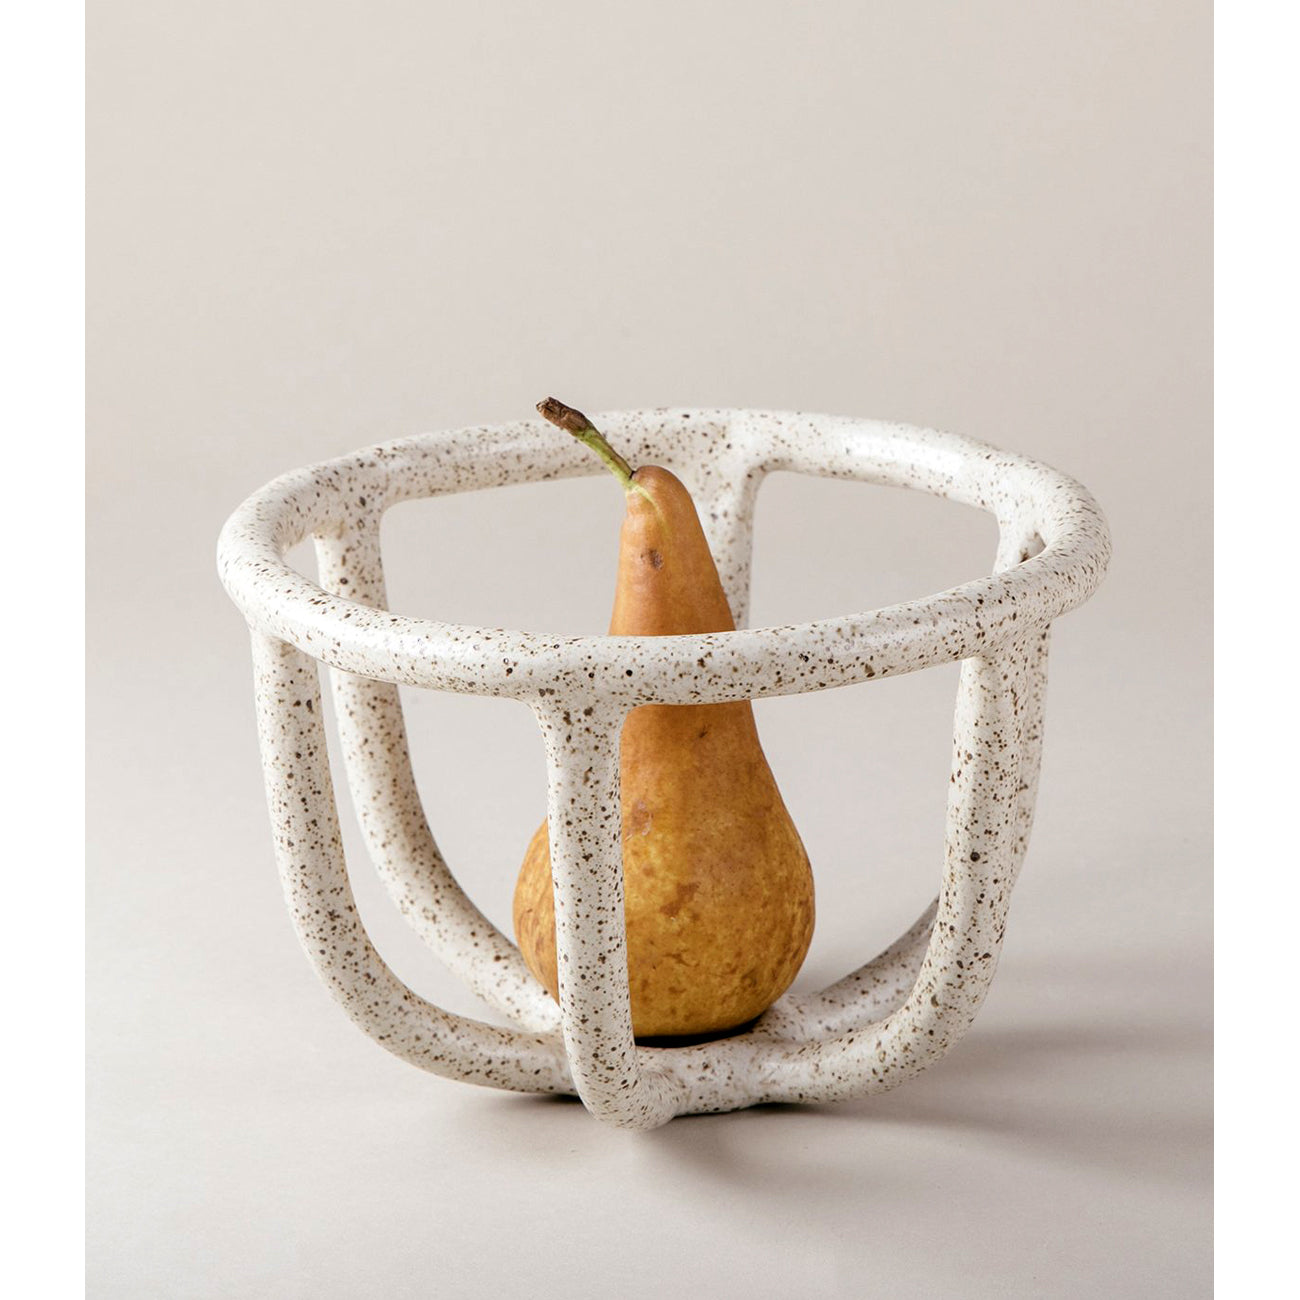 moth fruit bowl in speckled white